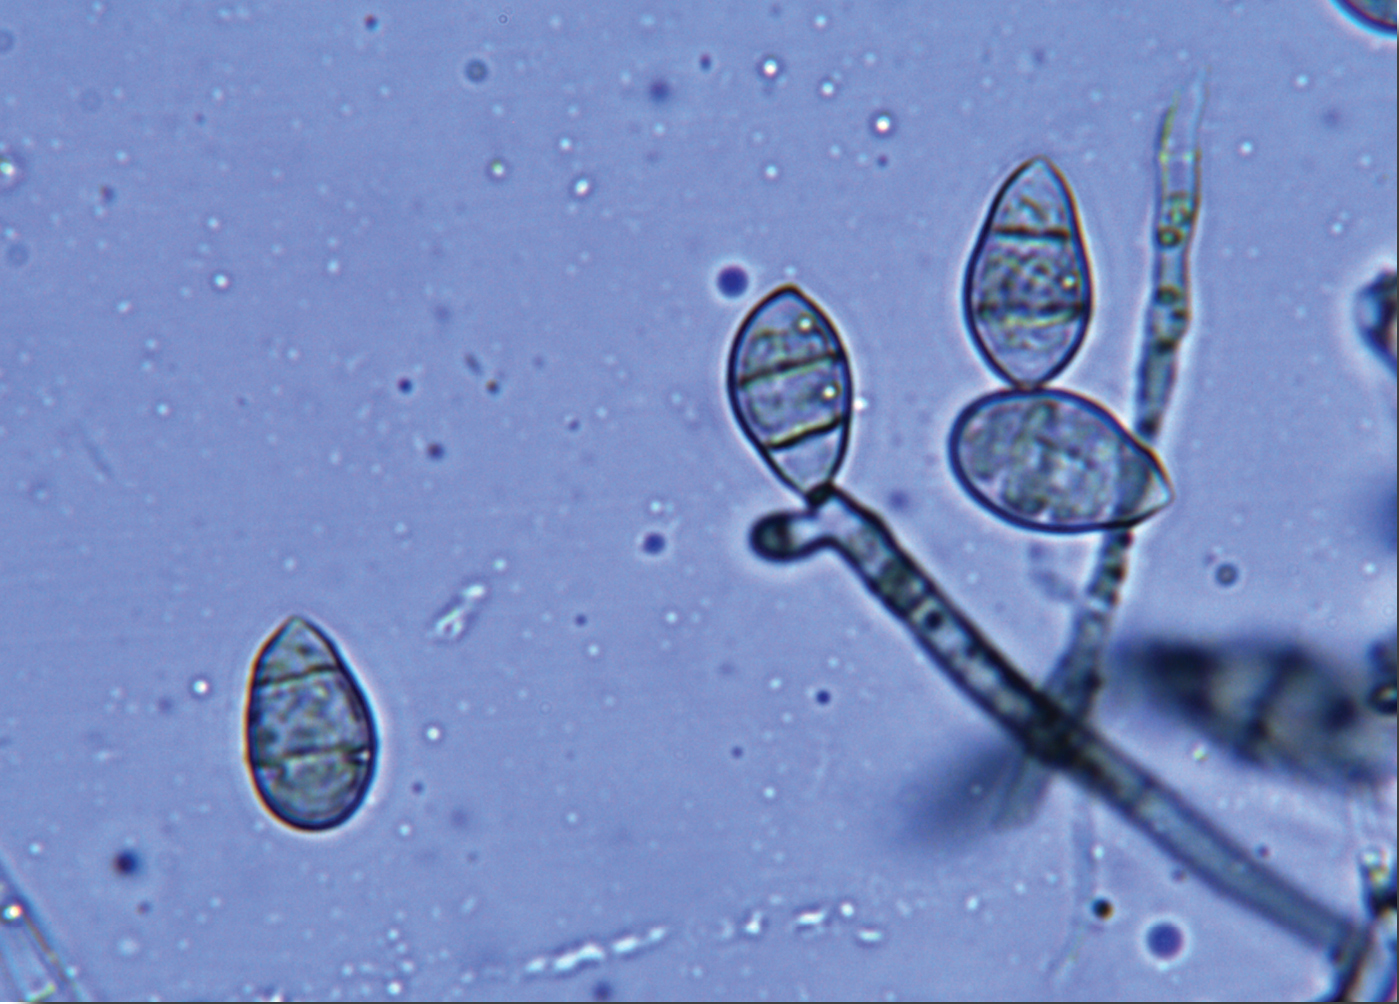 A microscopic view reveals blast spores.